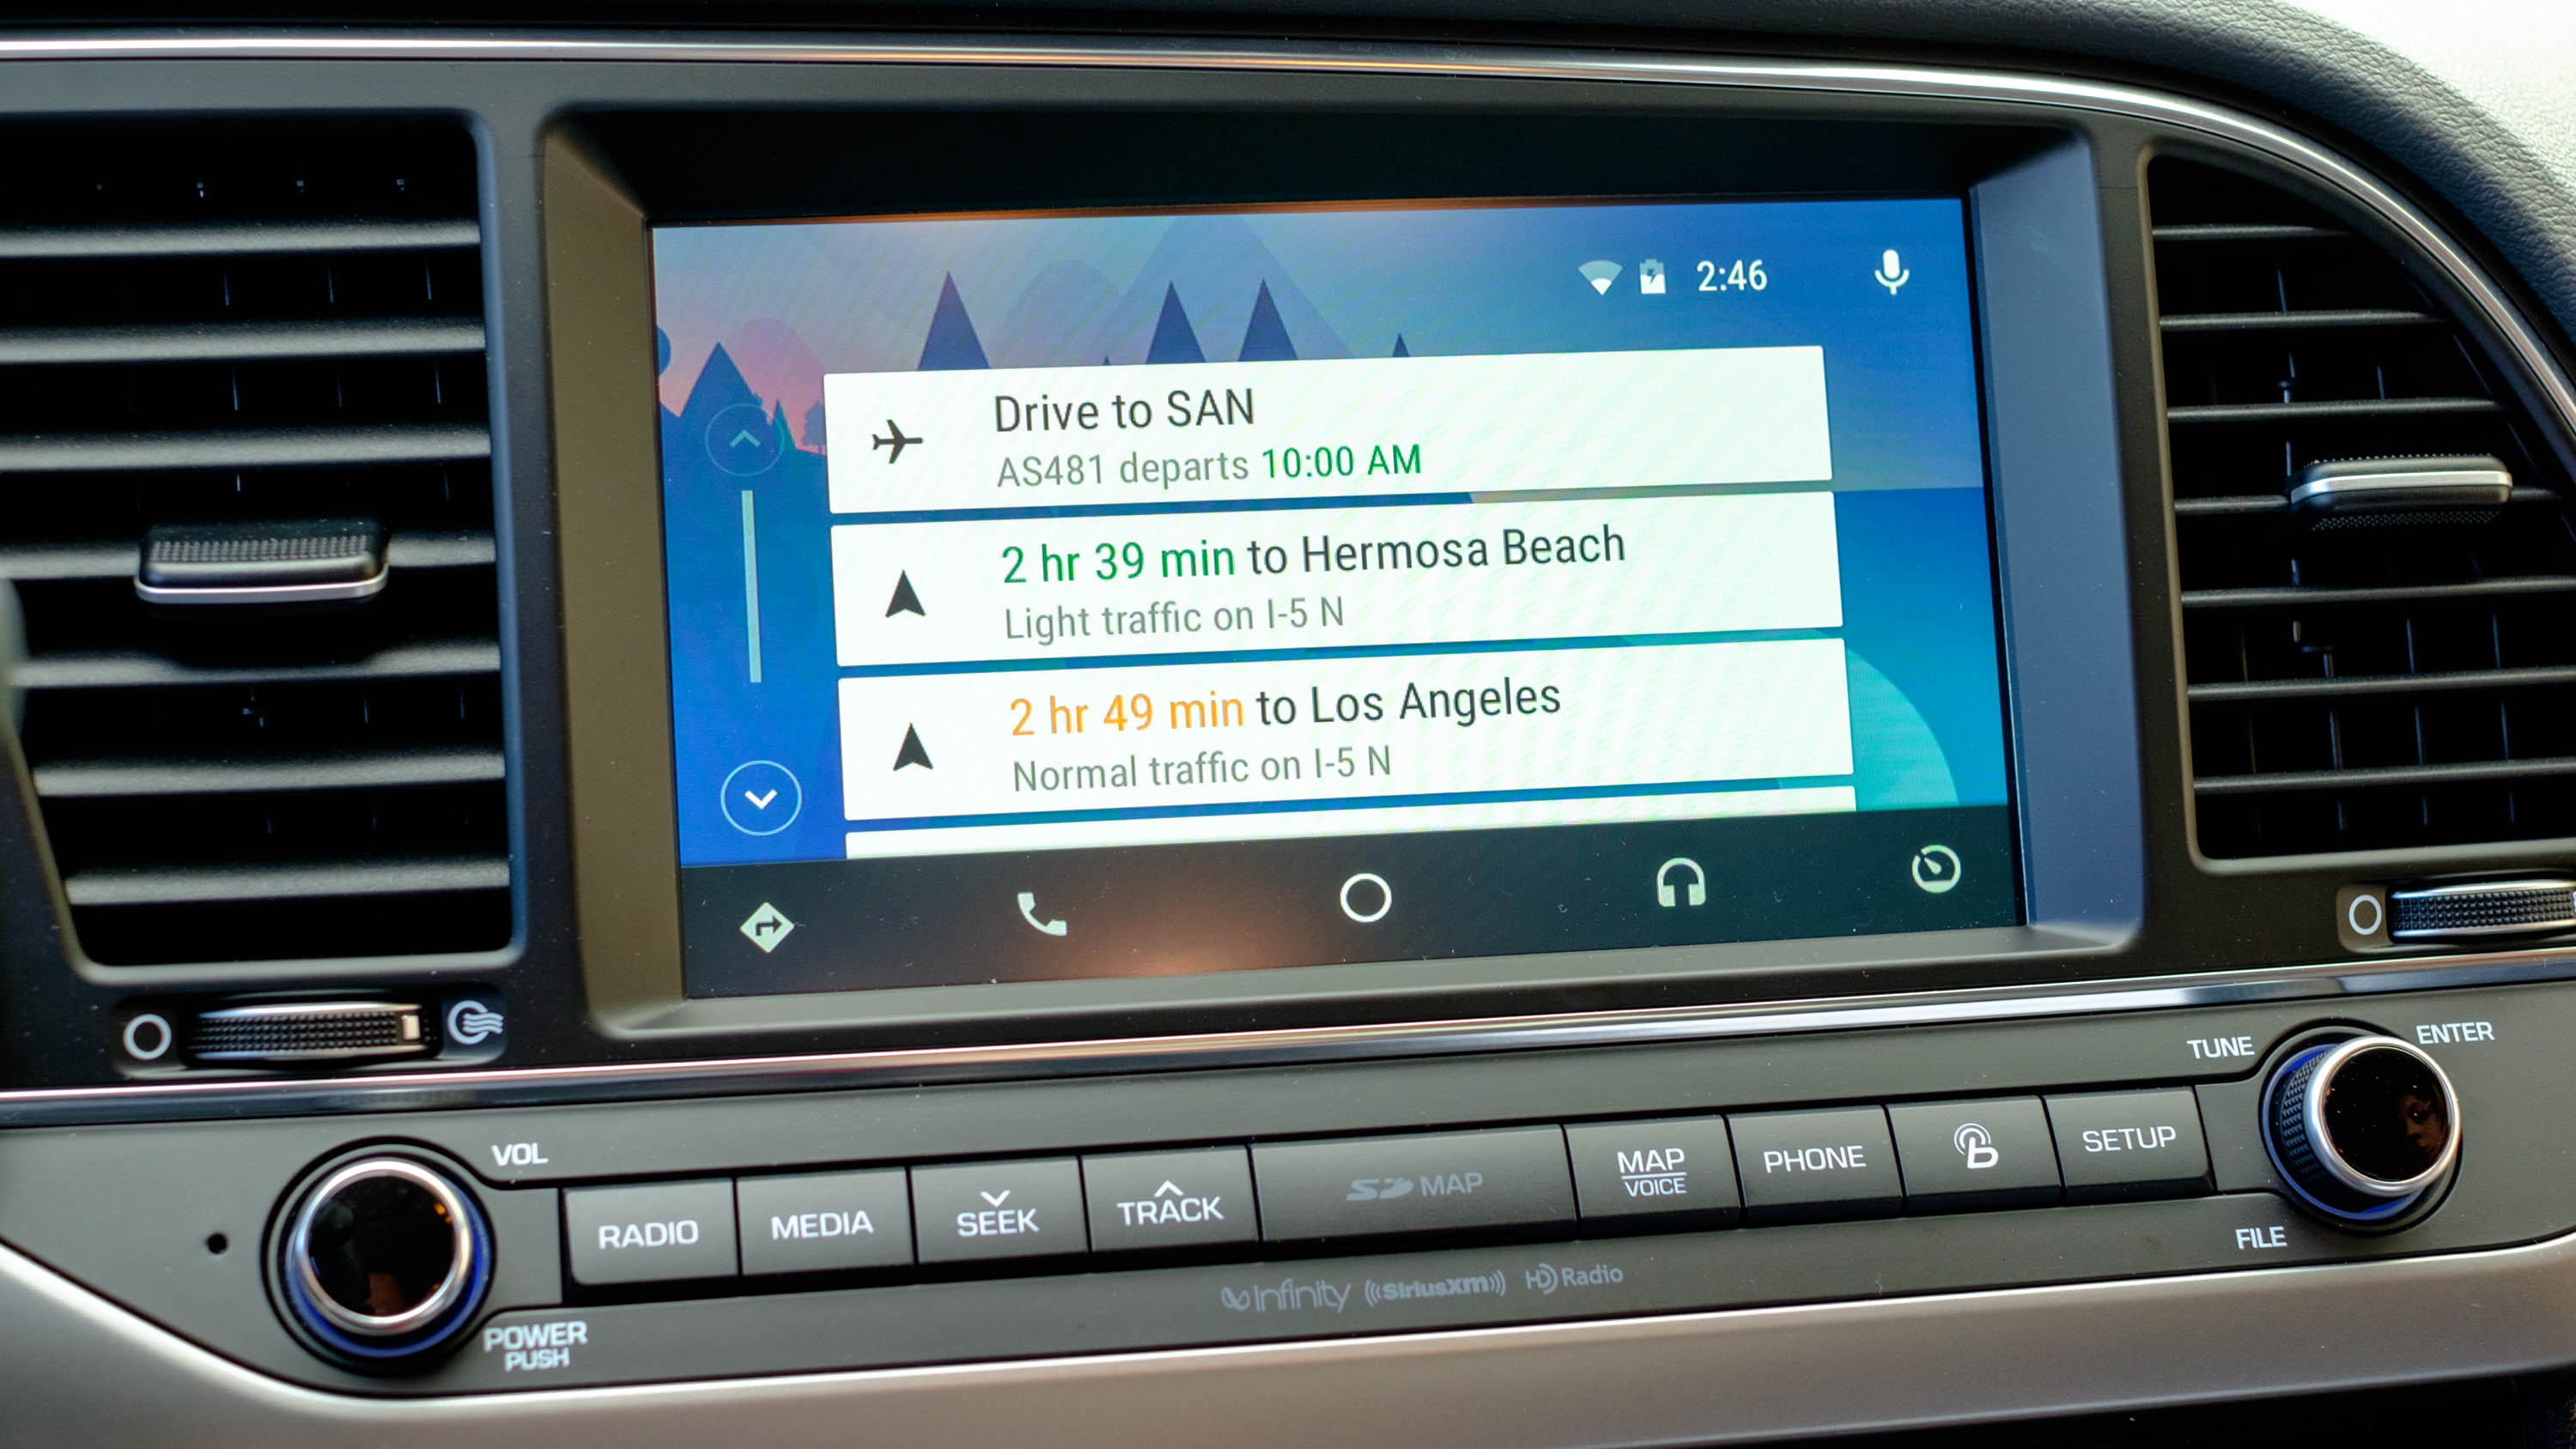 android auto: google's head unit for cars explained | techradar